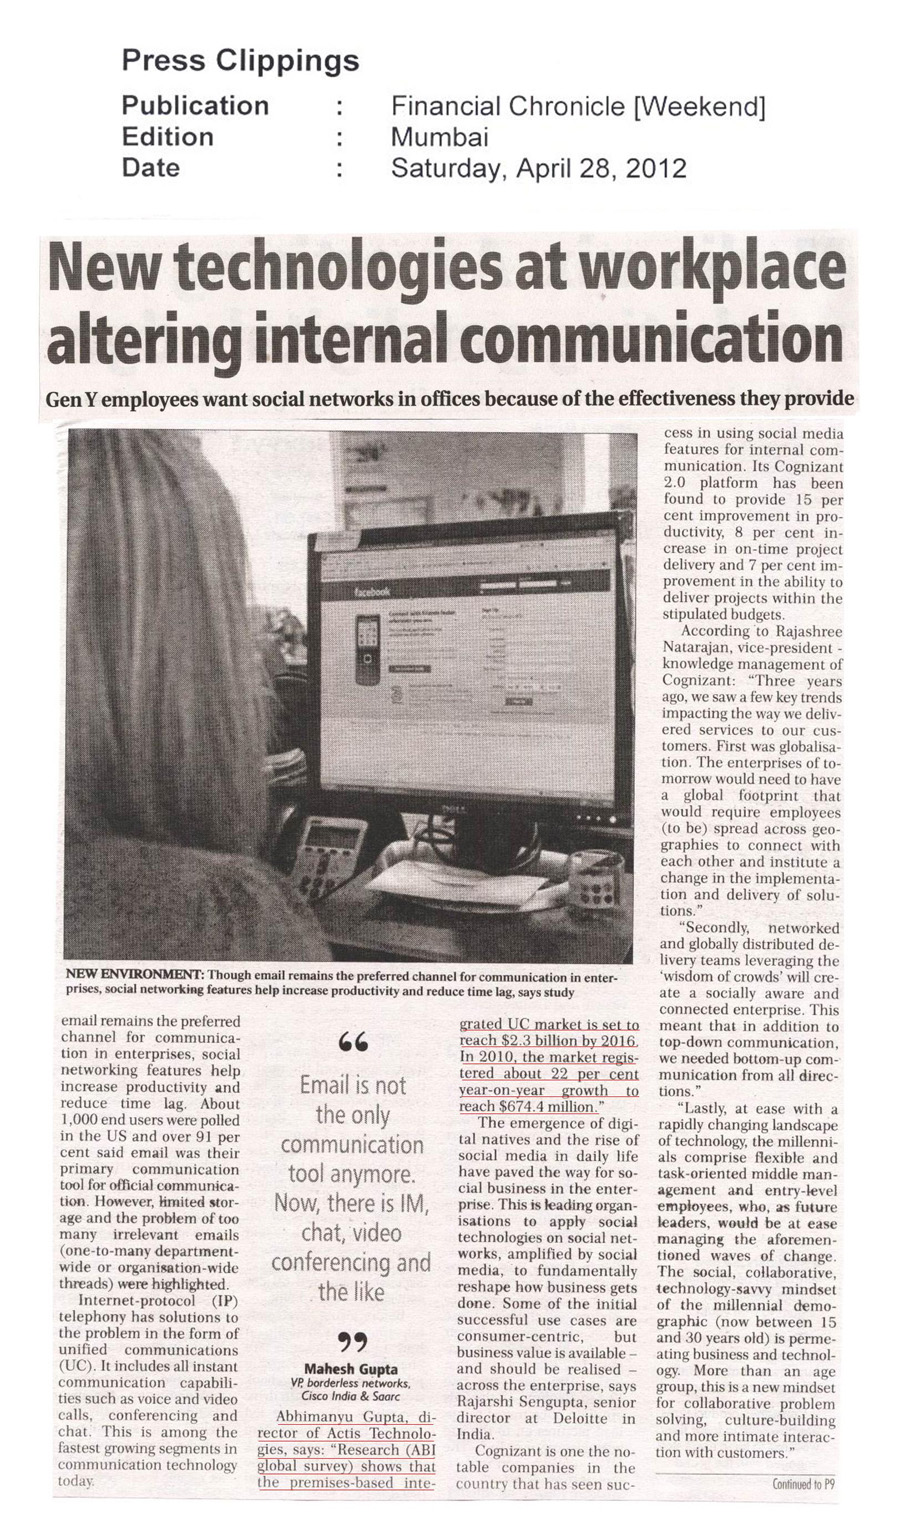 New technologies at workplace altering internal communication - Financial Chronicle (Print)